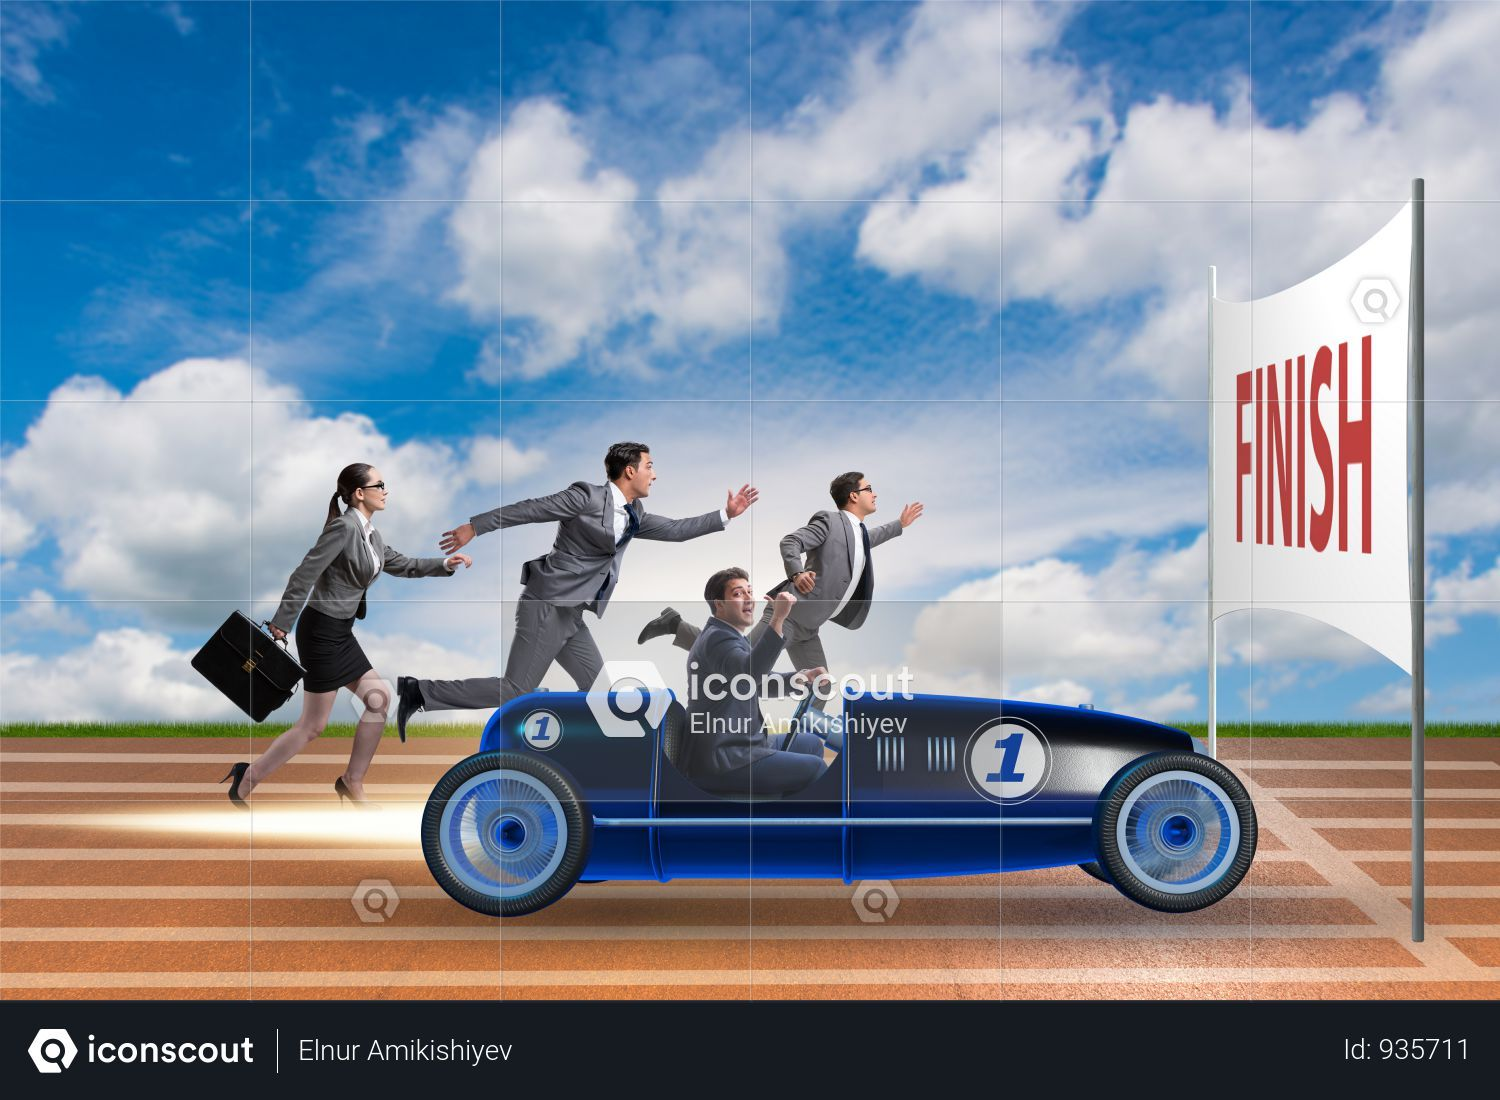 Premium Competition Concept With Business People Competing Photo Download In Png Jpg Format Business People Competition Competing